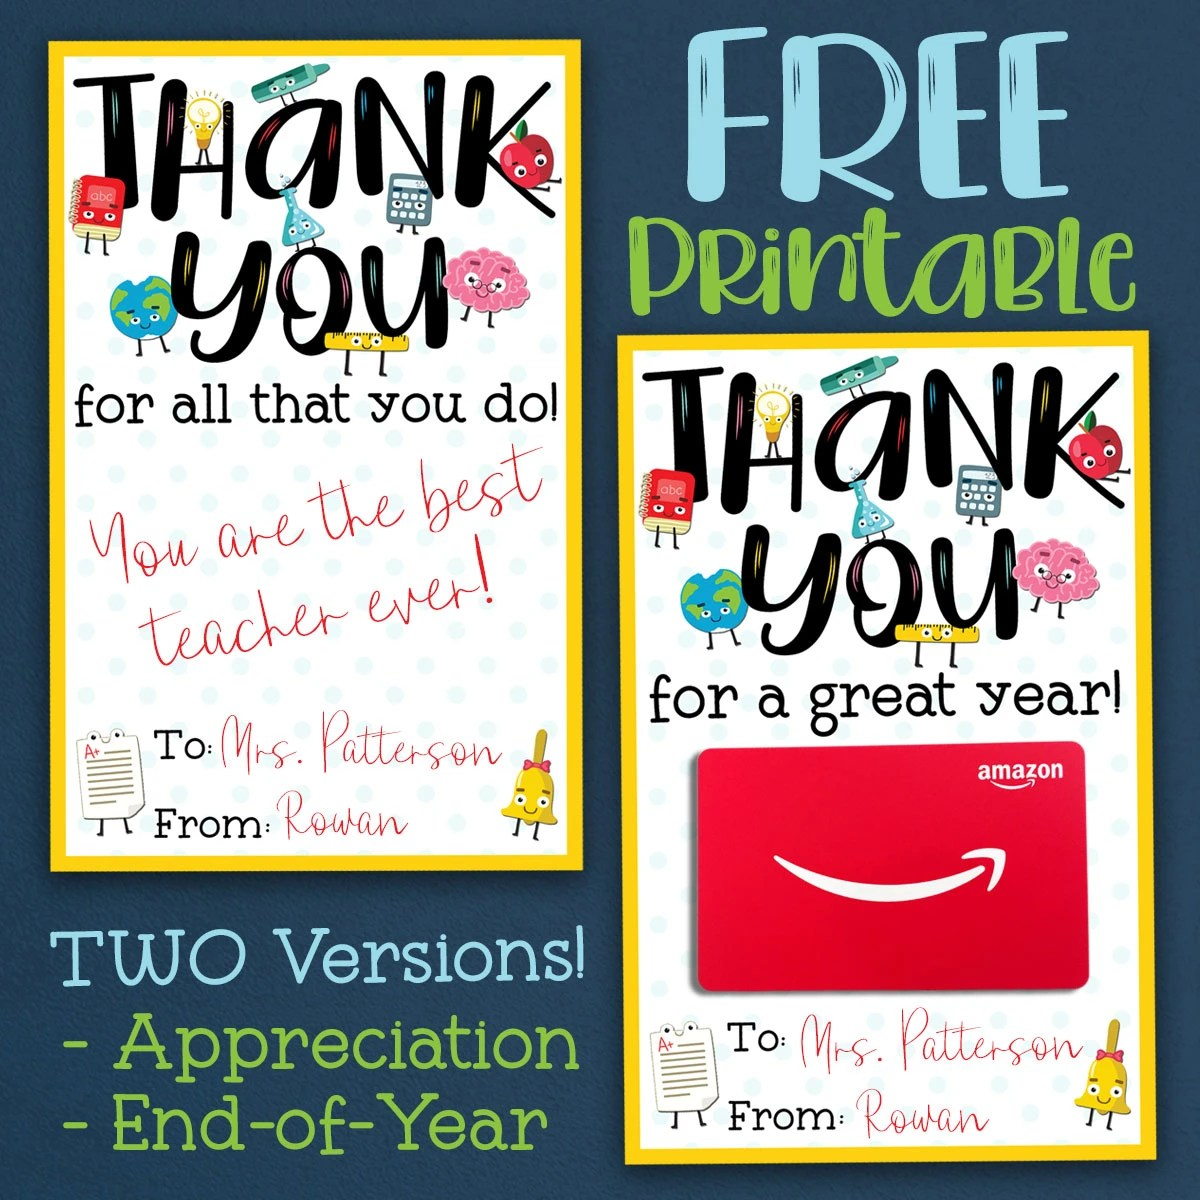 photo relating to Thank You Teacher Free Printable titled Absolutely free Trainer Appreciation Thank On your own Printable - 2 Designs!